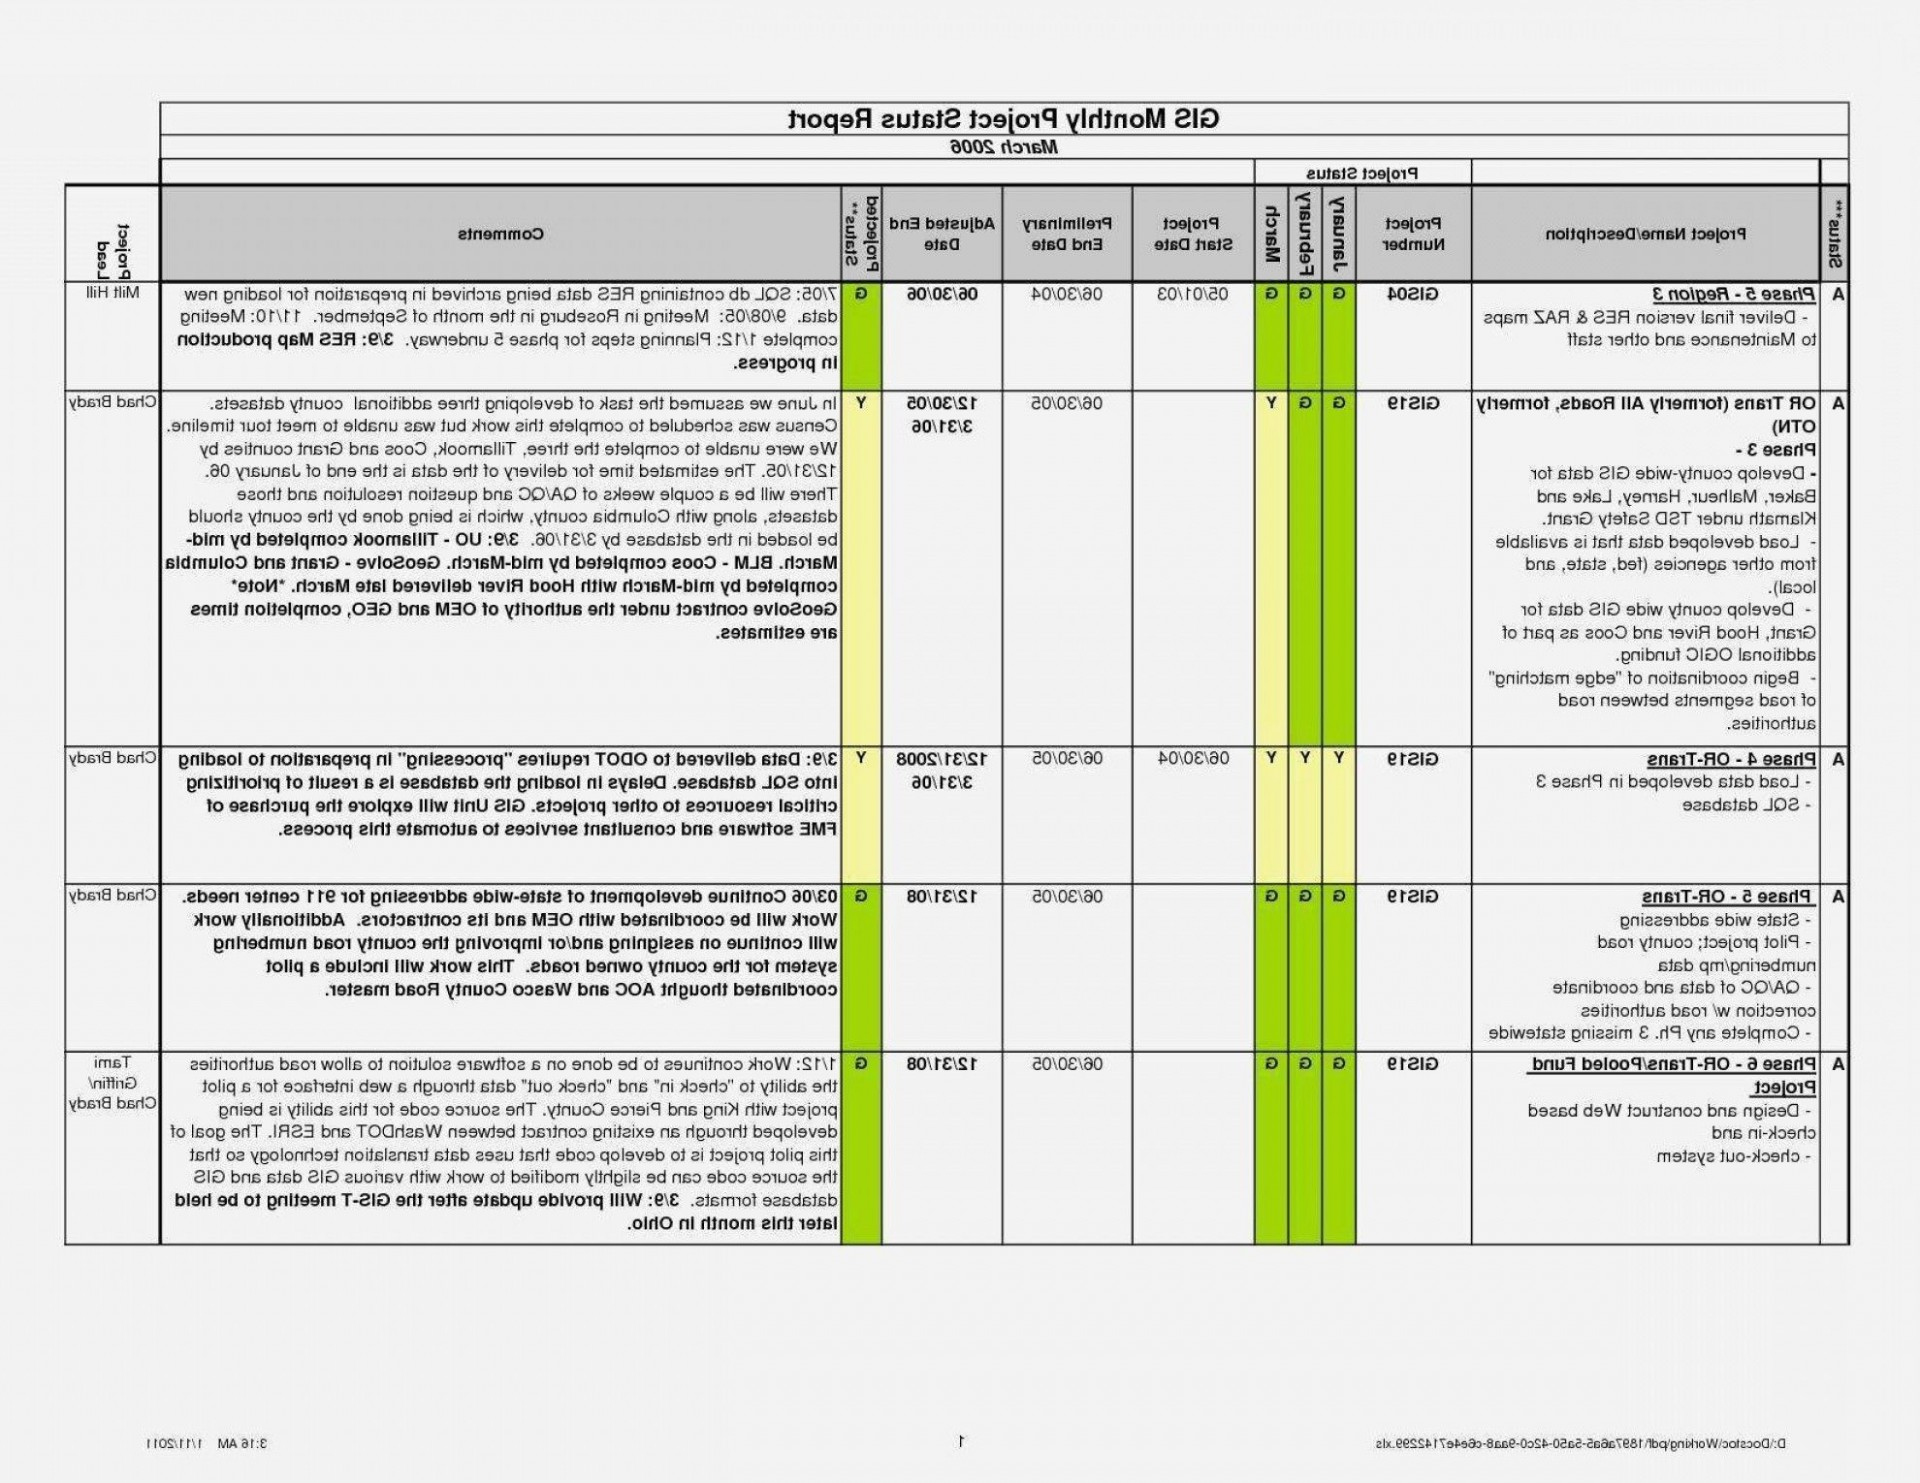 002 Awesome Project Management Progres Report Example  Statu Template Monthly Weekly Ppt1920